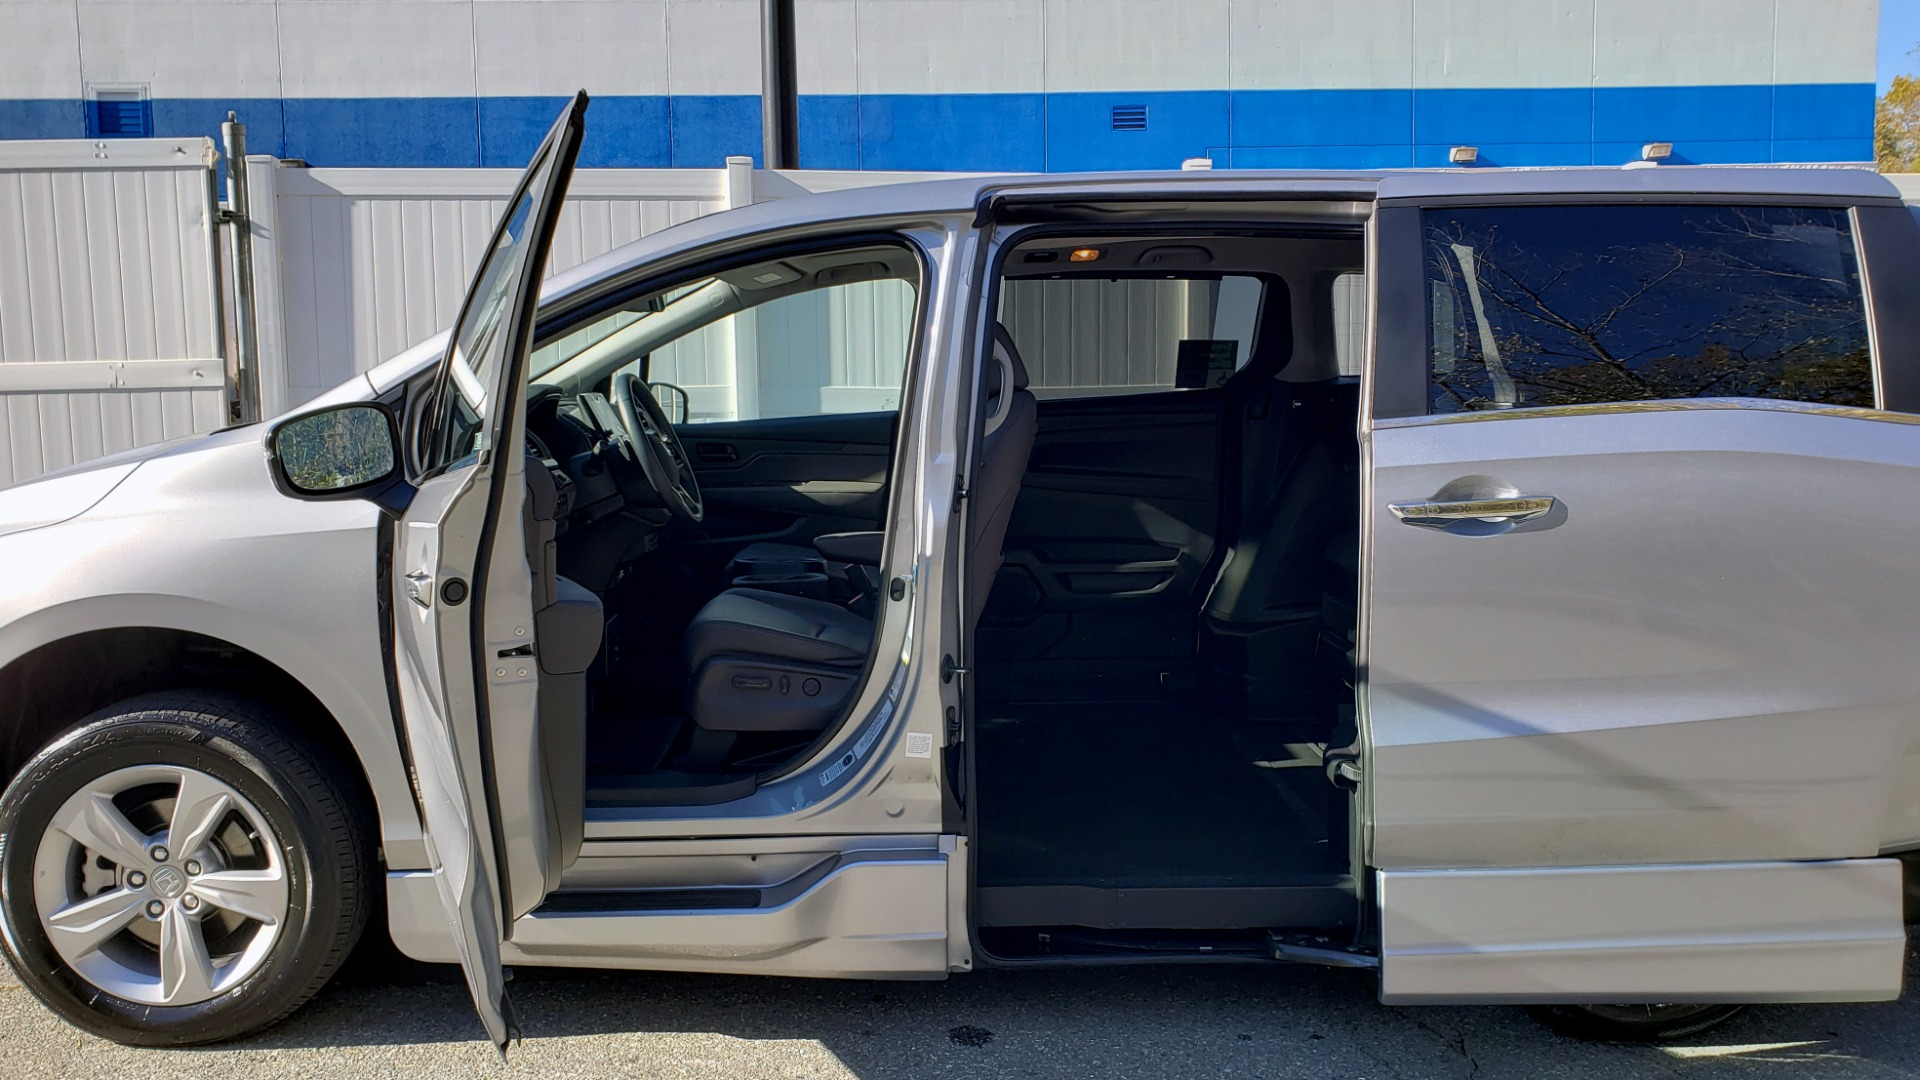 Used 2019 Honda ODYSSEY EX-L BRAUNABILITY / NAV / RES / LKA / BLUE-RAY / SUNROOF / REARVIEW for sale $49,999 at Formula Imports in Charlotte NC 28227 9